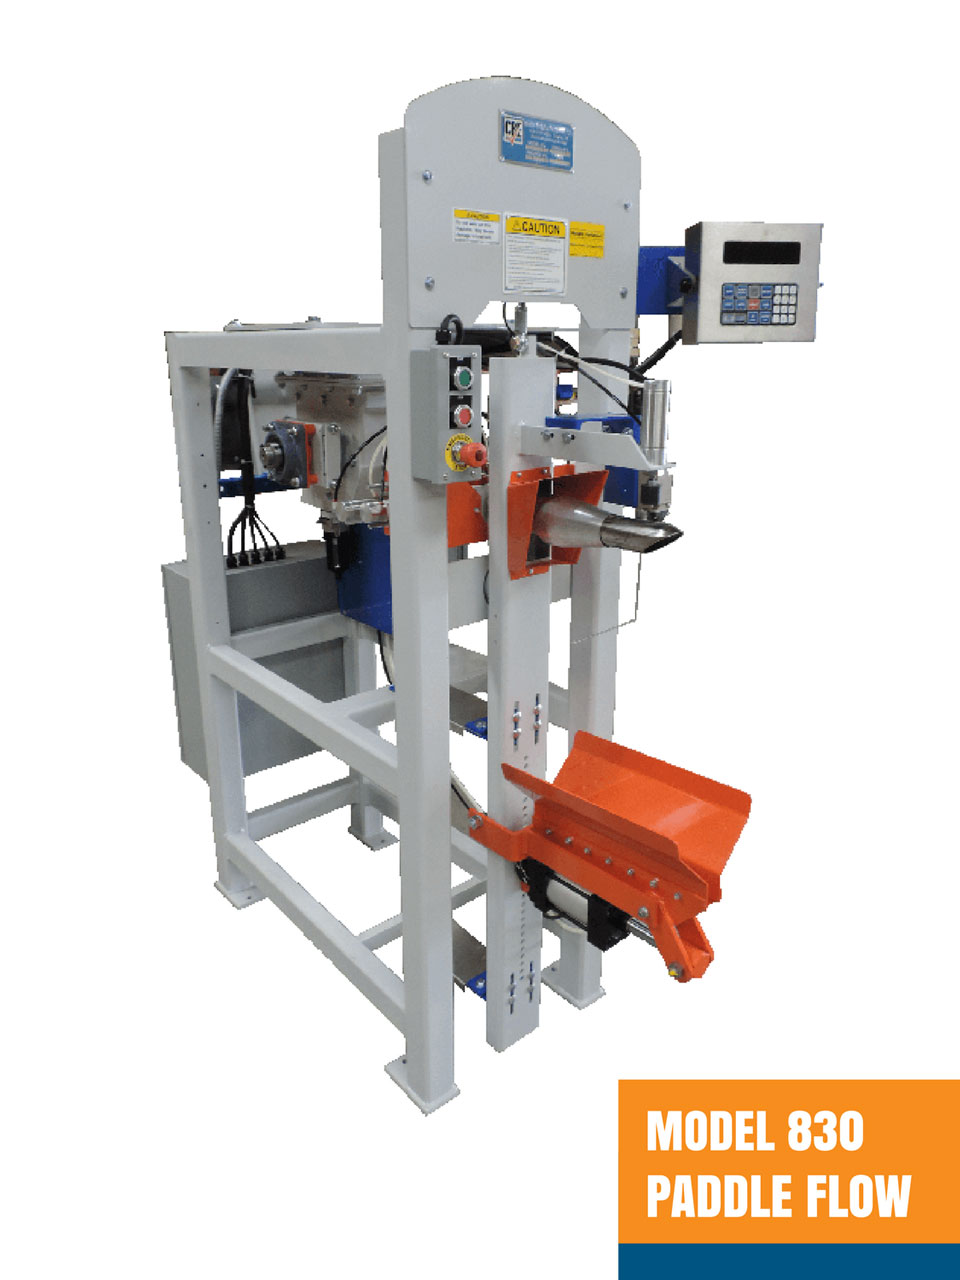 Valve Bag Filling Machines With Fill Rates Up To 12 Bags